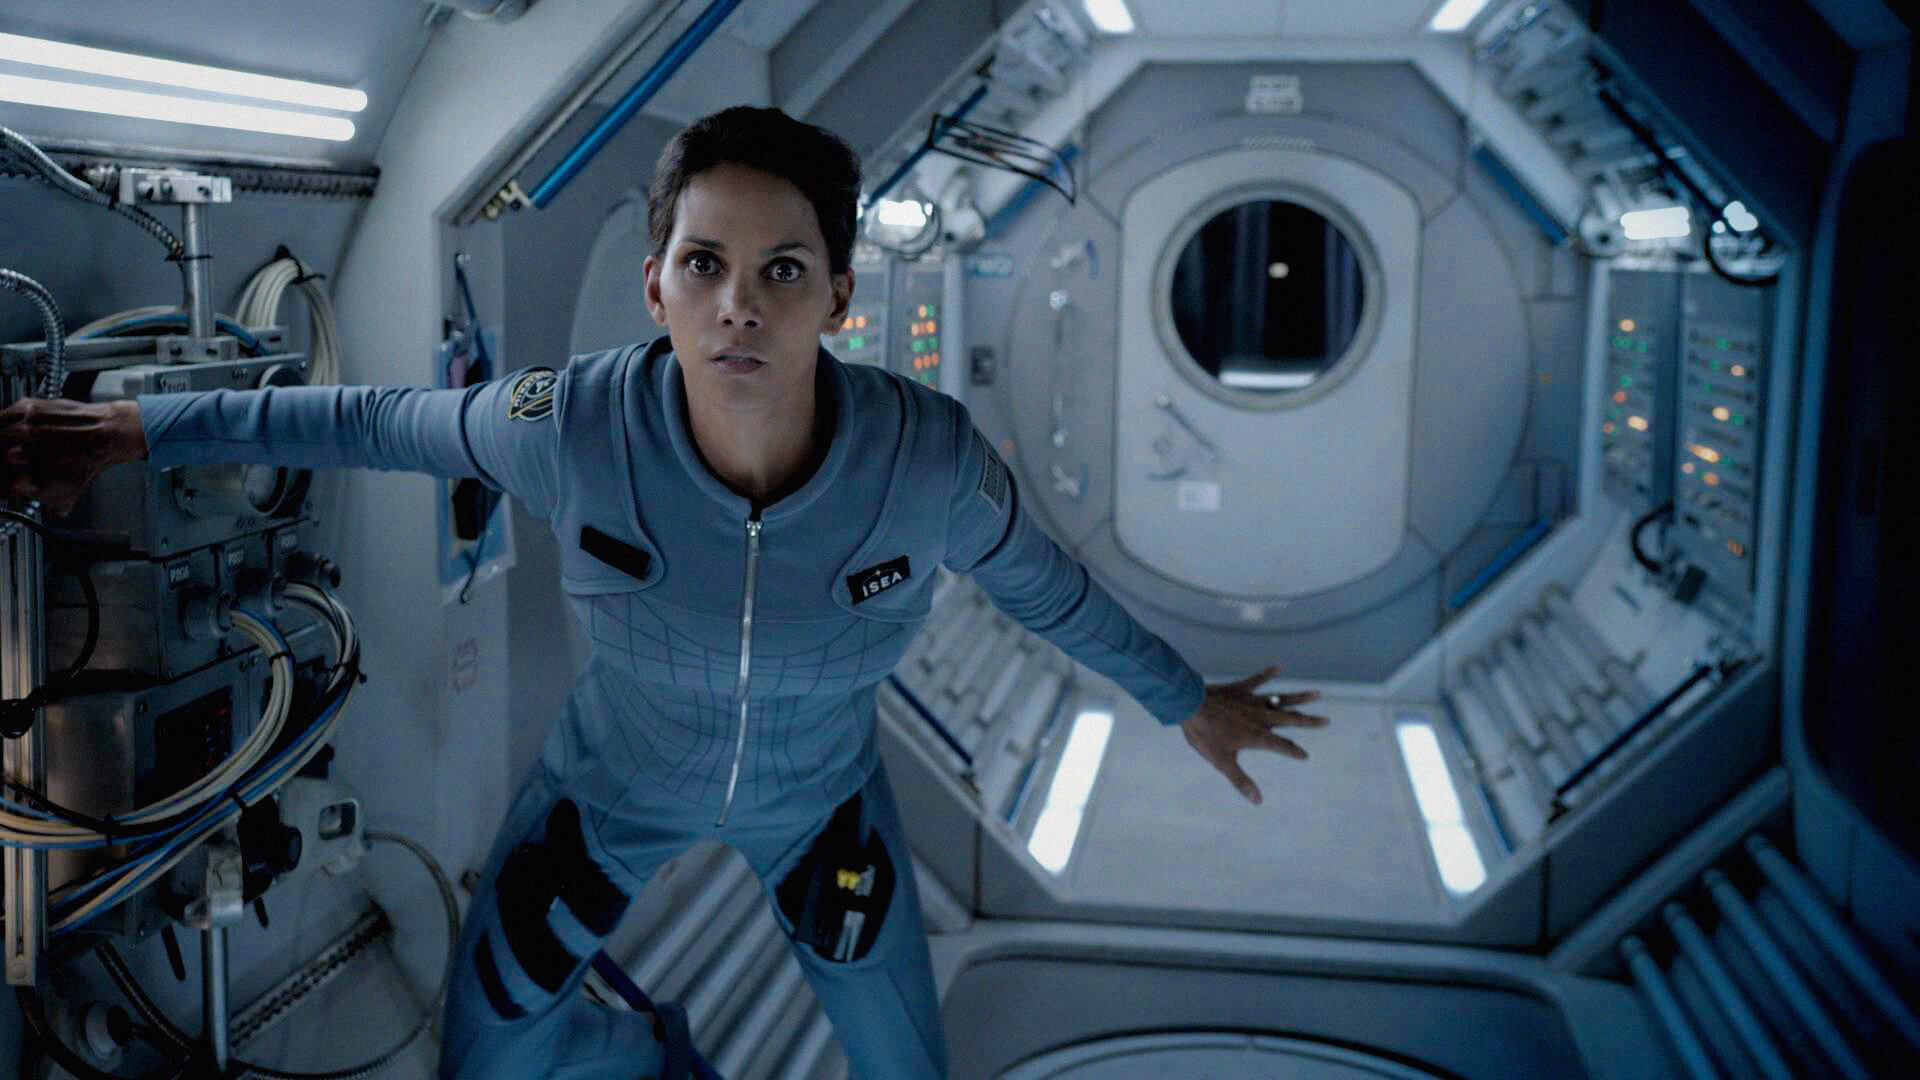 halle berry as molly woods in a spaceship